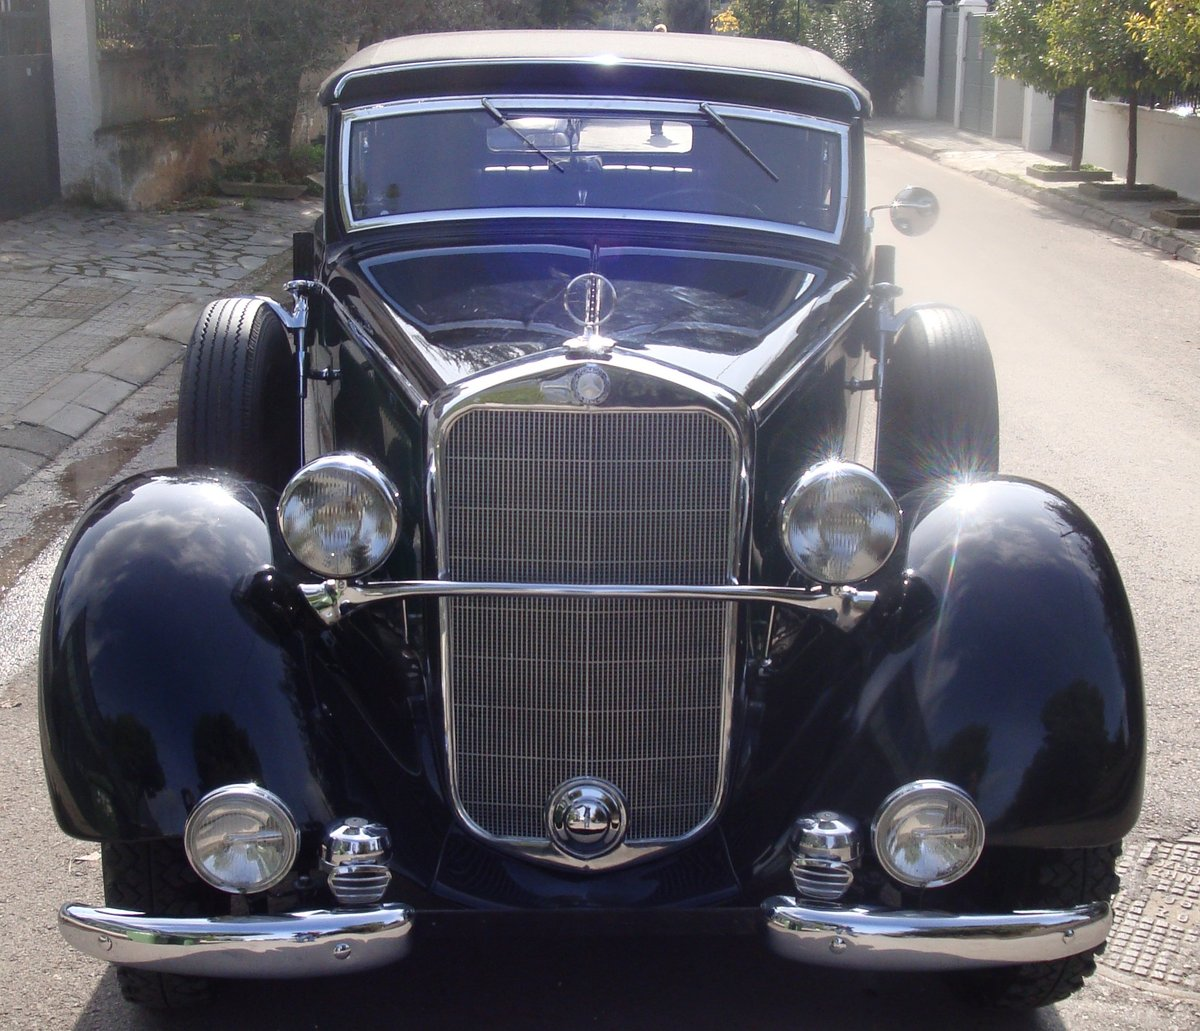 1936 Mercedes-Benz 230 Cabriolet B, 40450mi from new For Sale (picture 1 of 6)